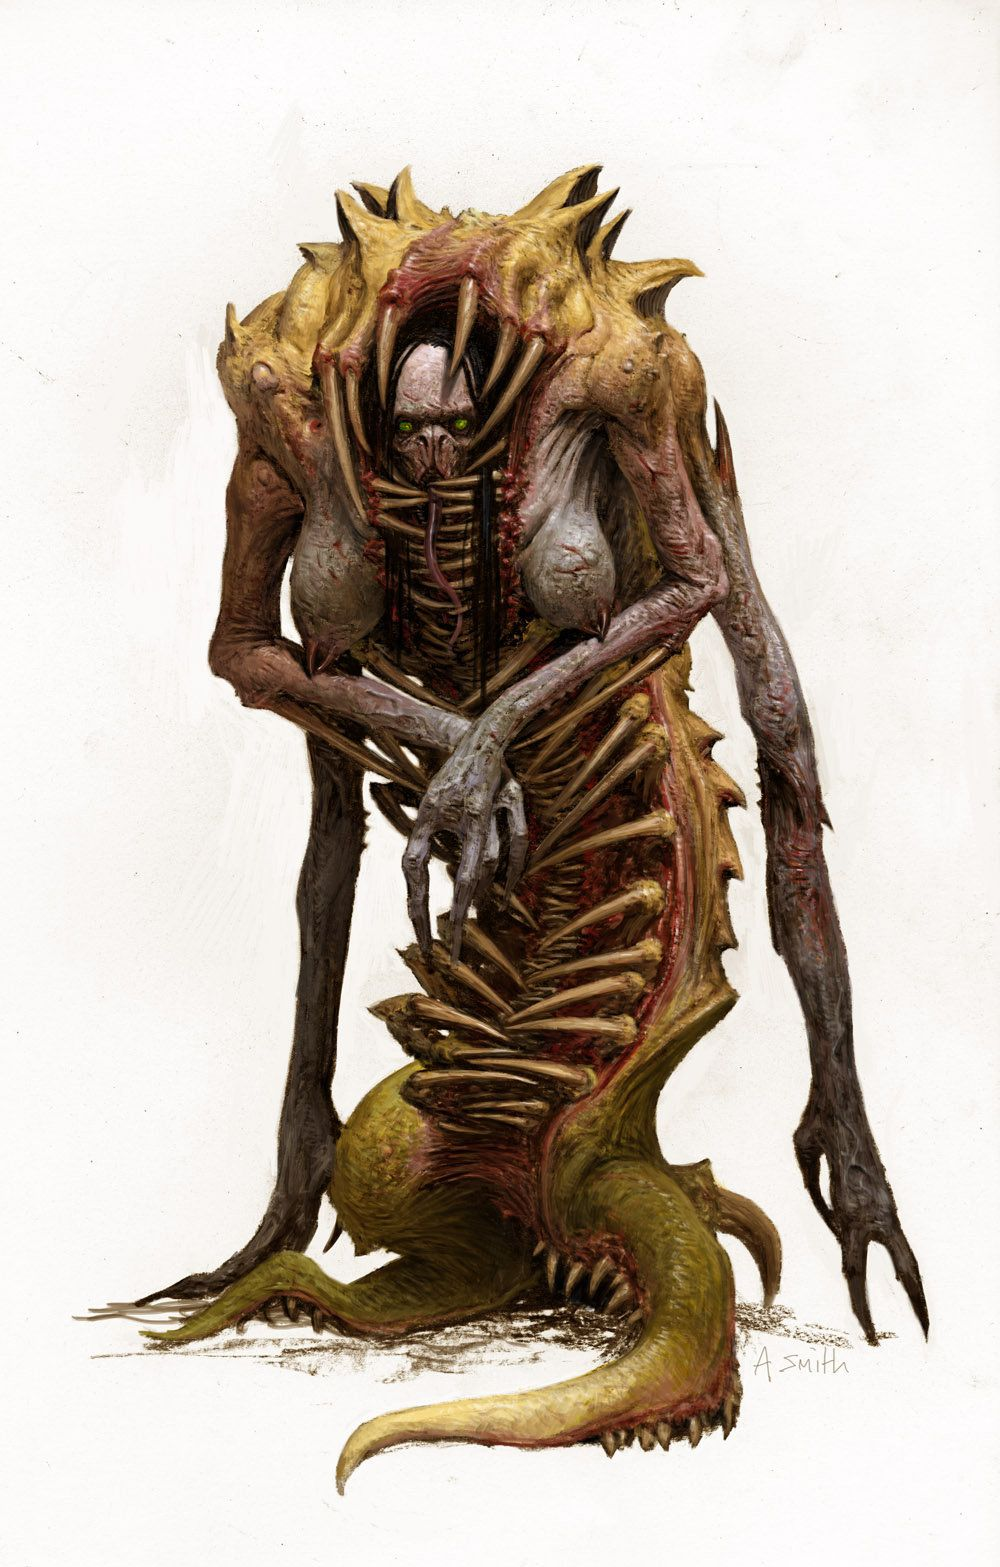 The Others Seven Sins Board Game Character Envy Adrian Smith On